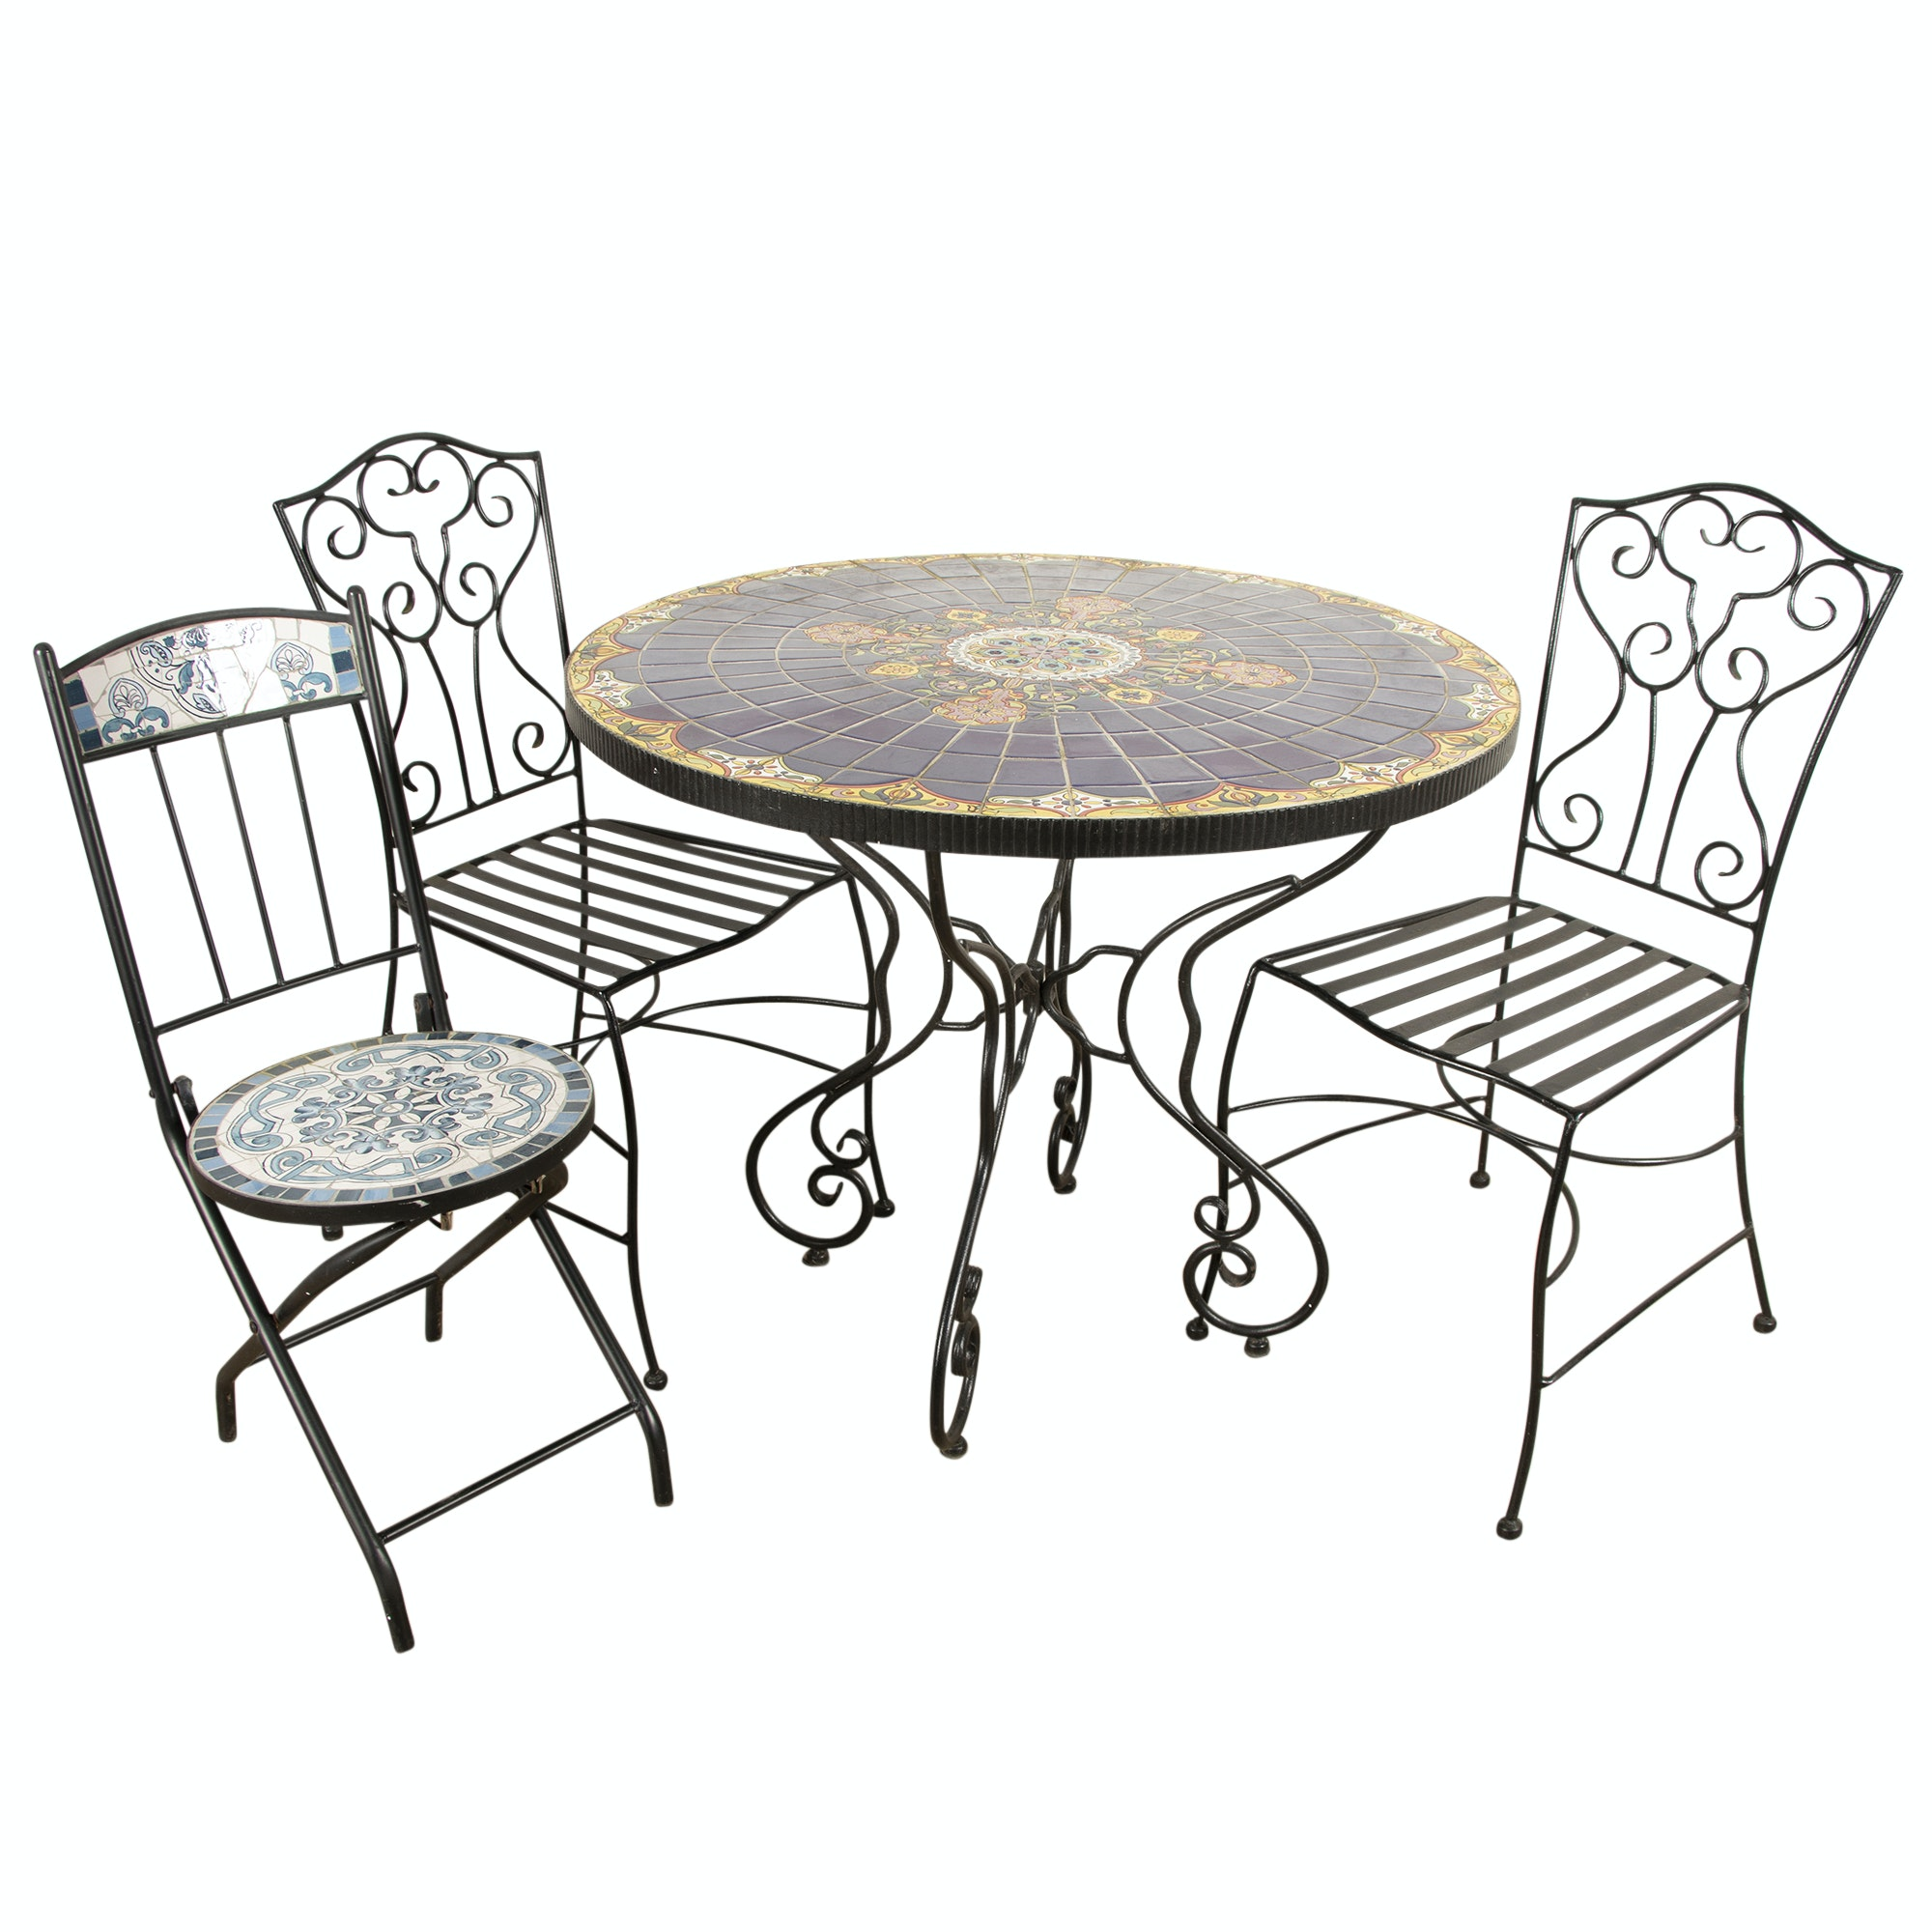 Ceramic and Metal Patio Table with Metal Chairs, 20th Century